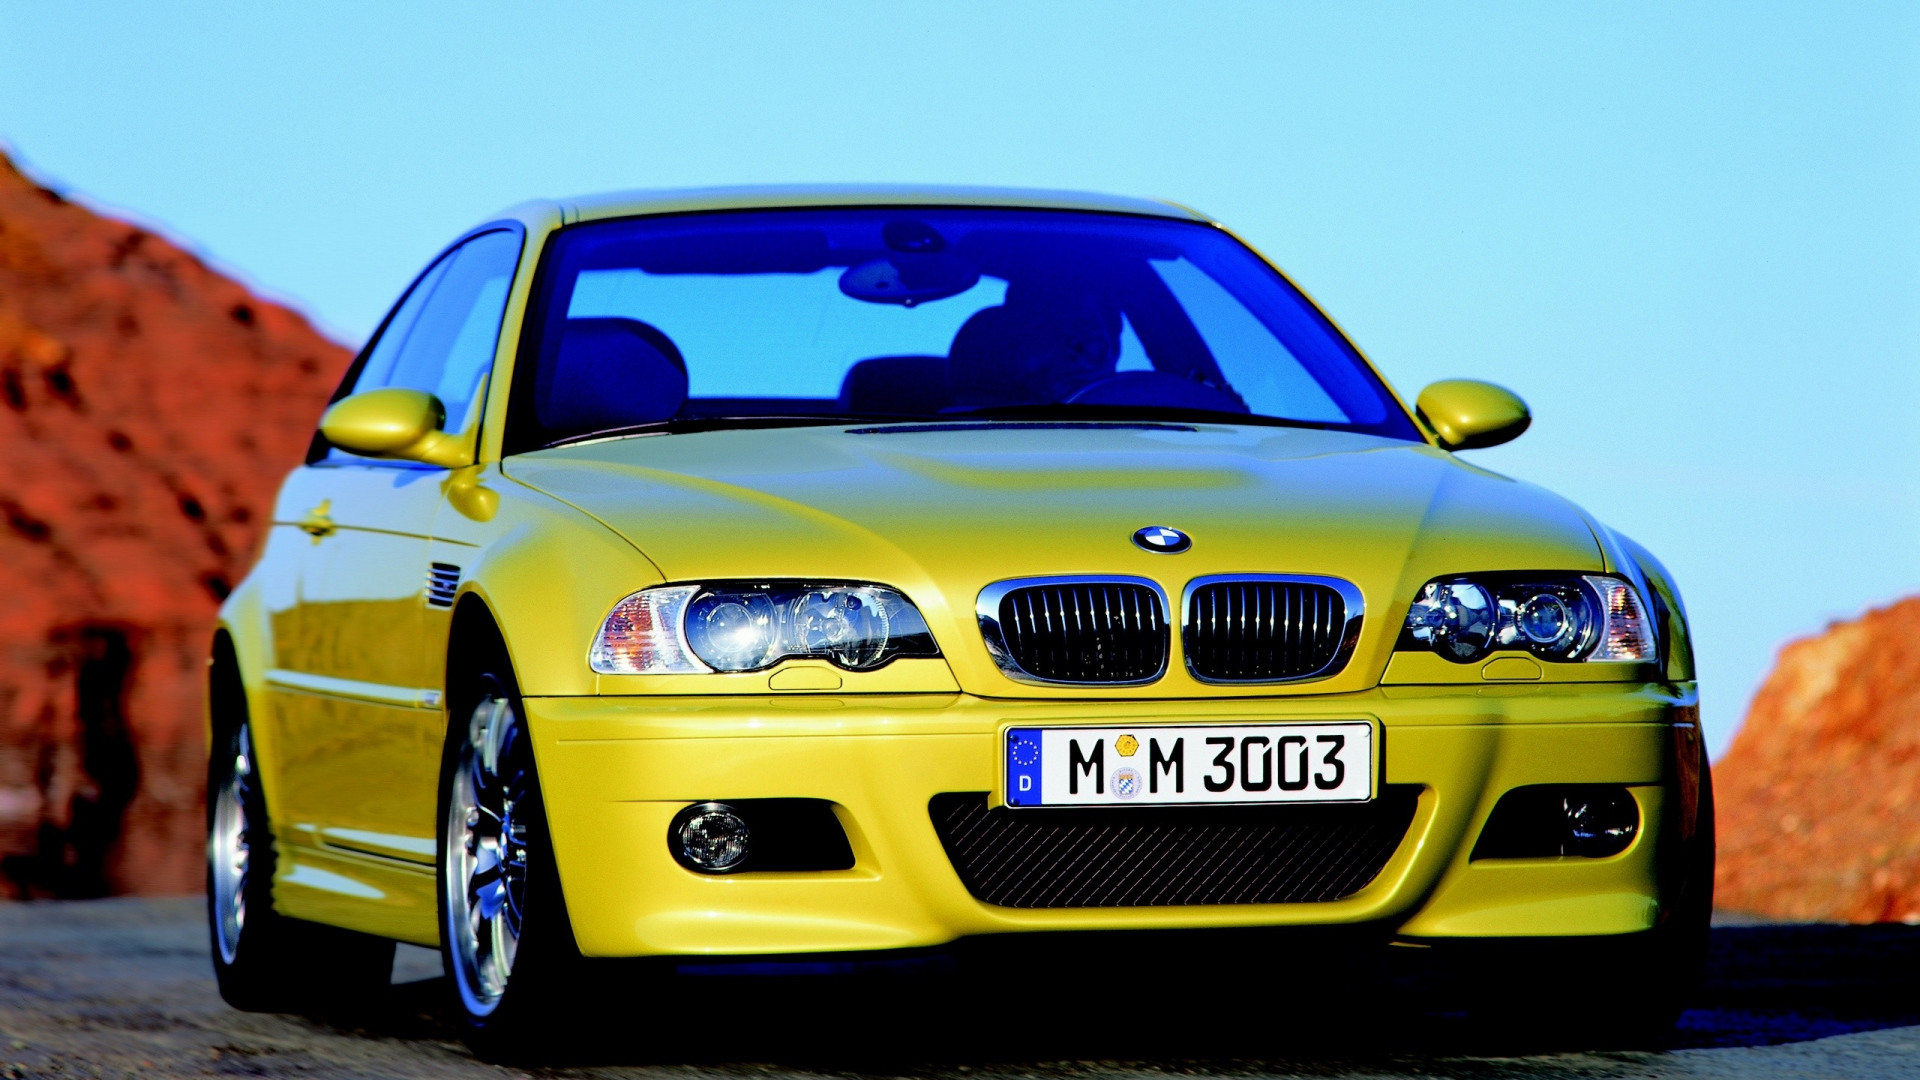 1920x1080 Preview wallpaper bmw e46 m3, cars, yellow, style, movement